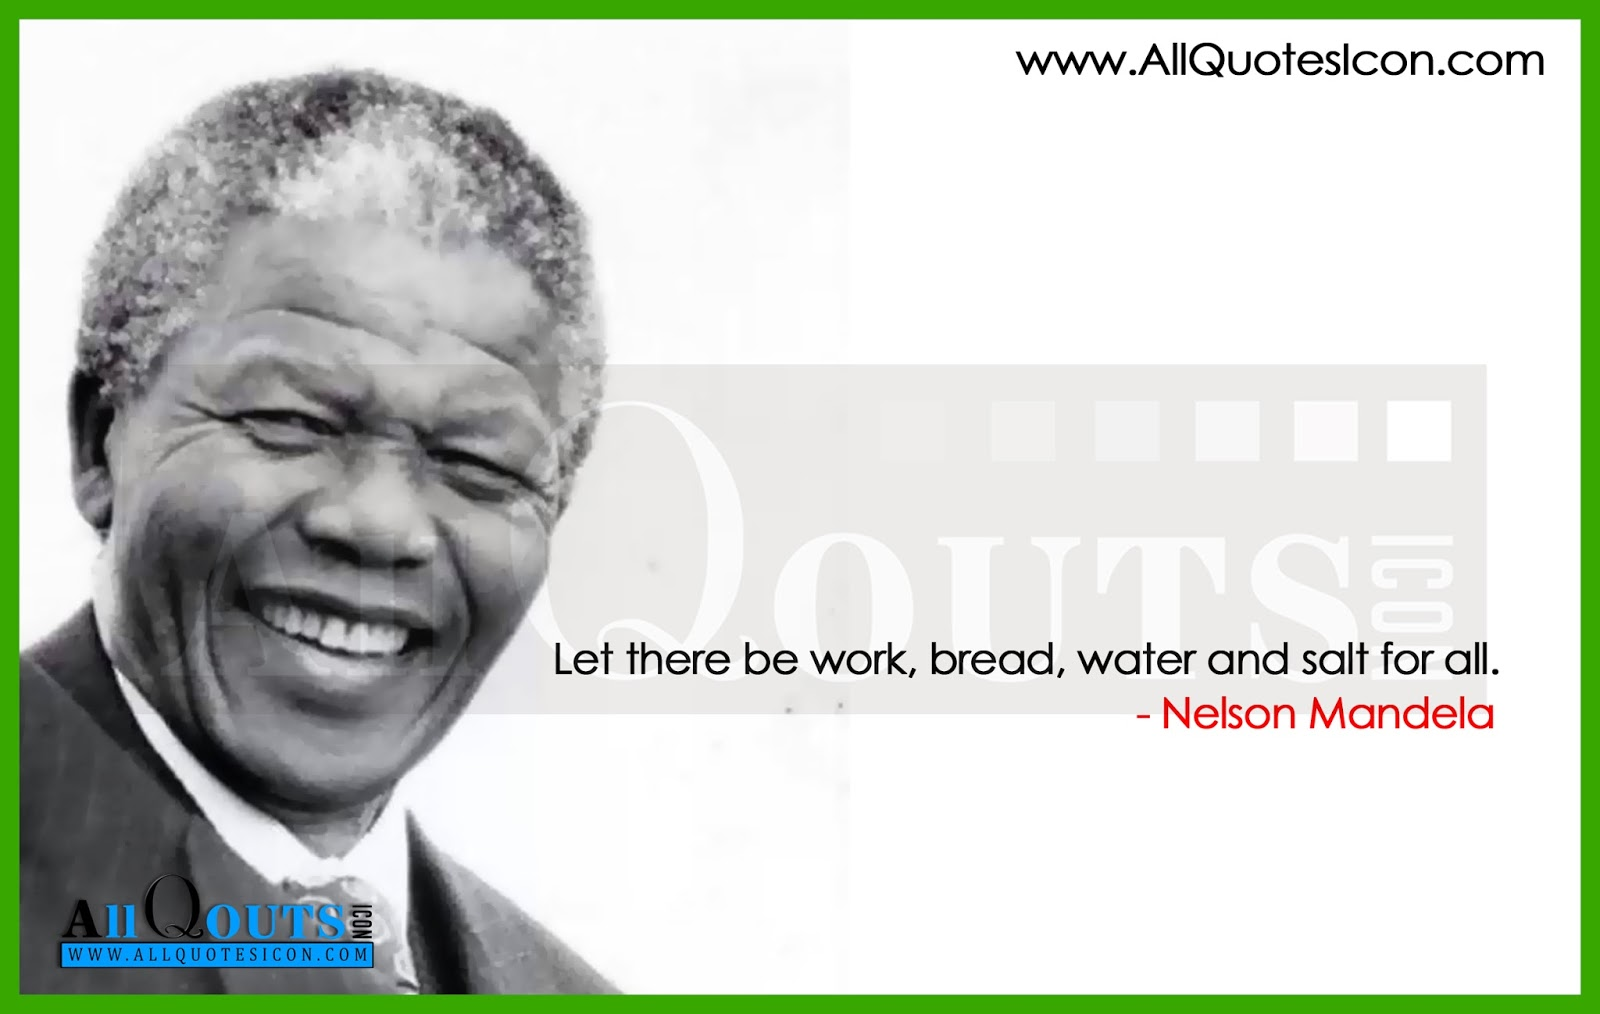 Best Life Quotes From Nelson Mandela English Quotes Images Www